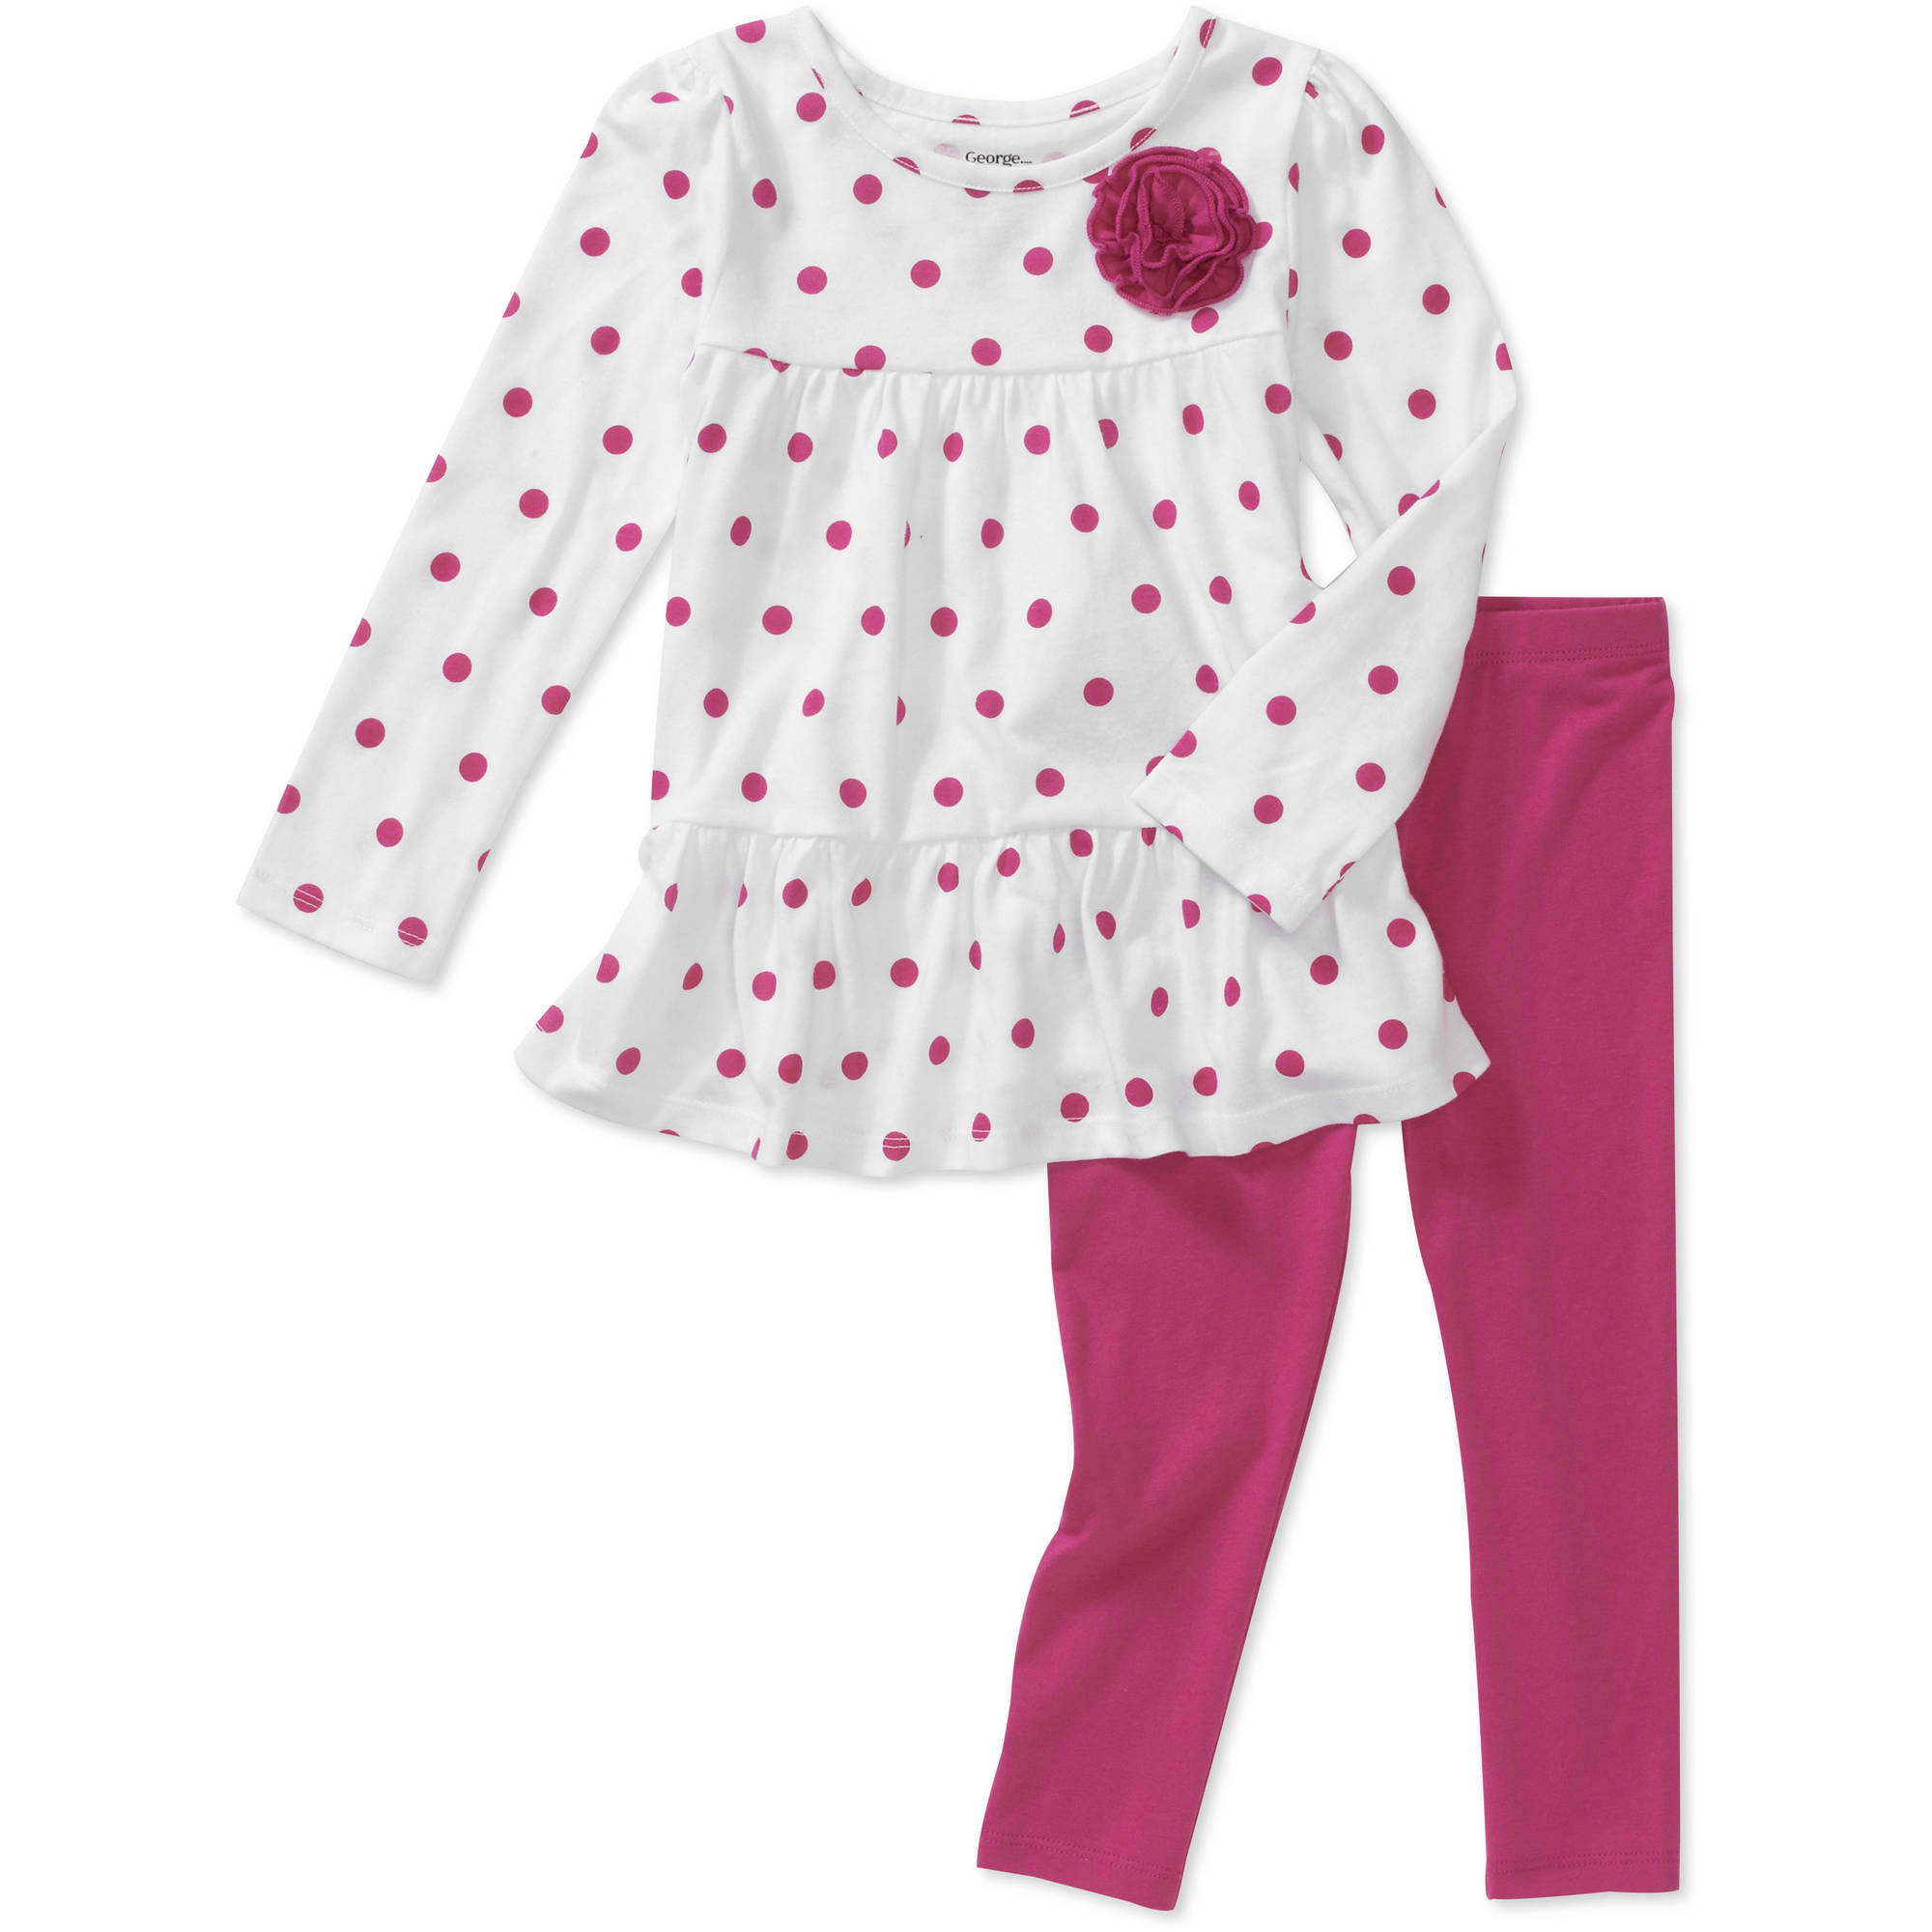 George Baby Girls' 2-piece Dot Top And L